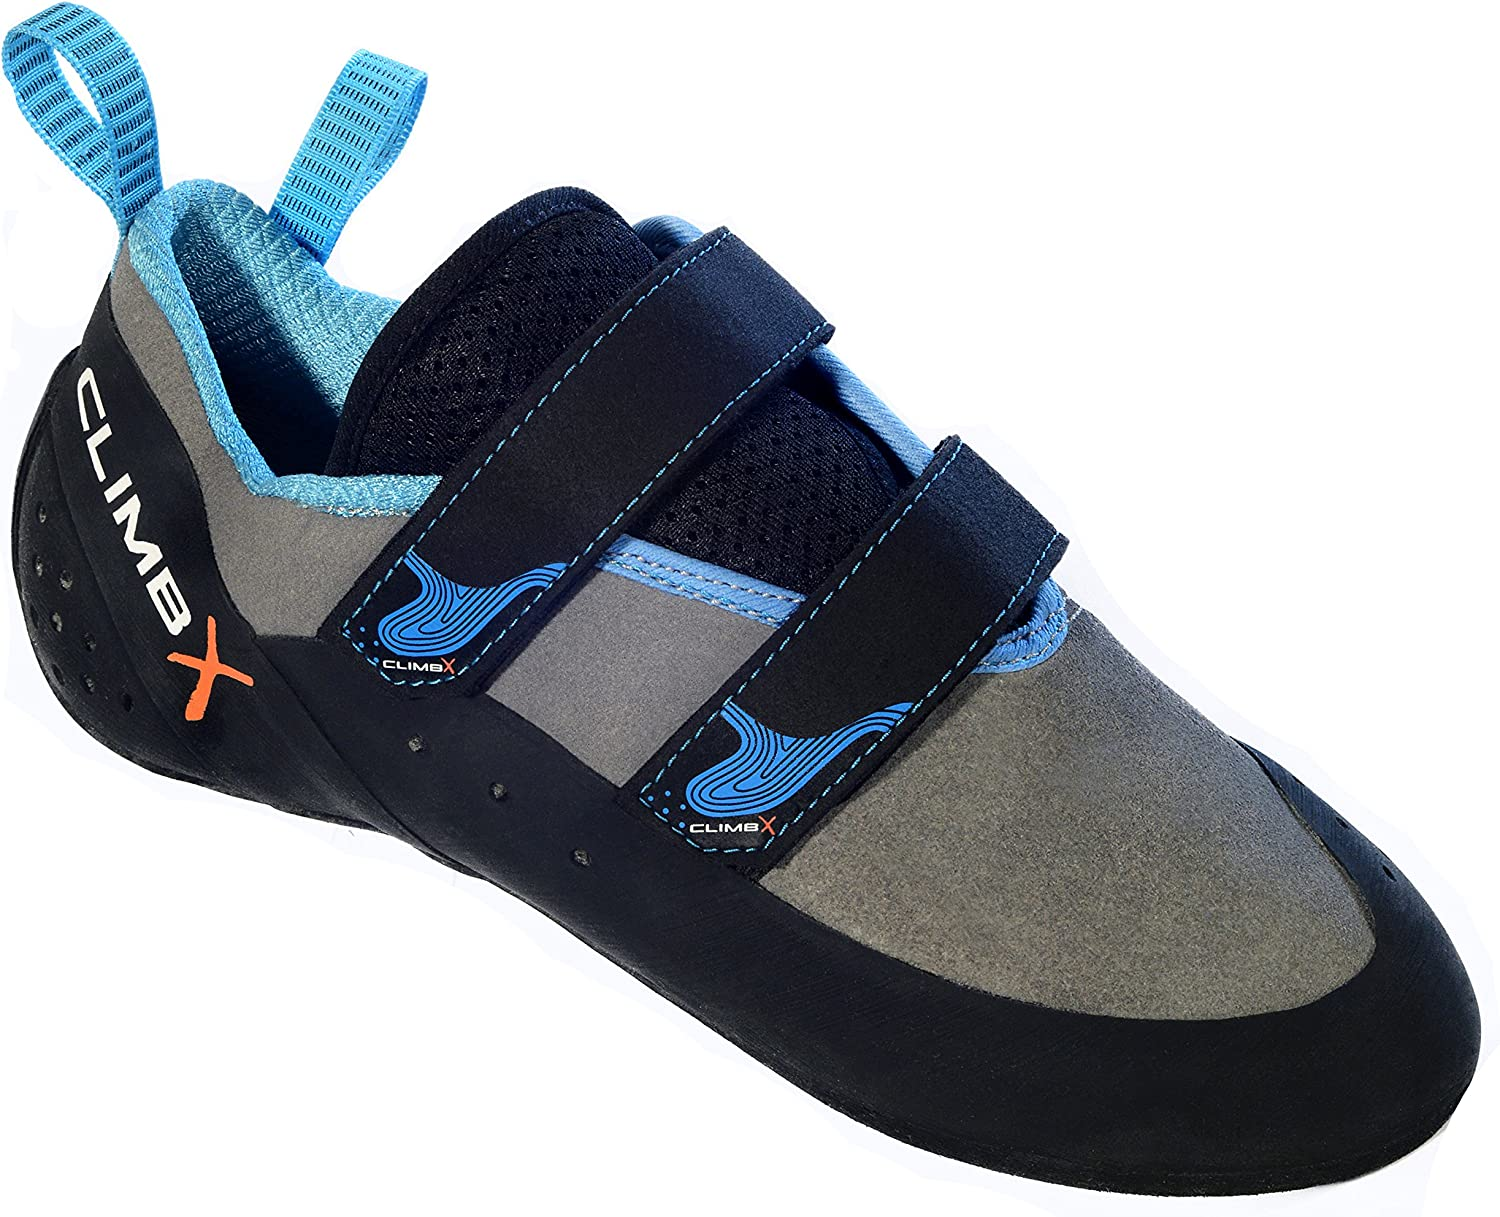 Climb X Rave Strap Climbing shoes 2019